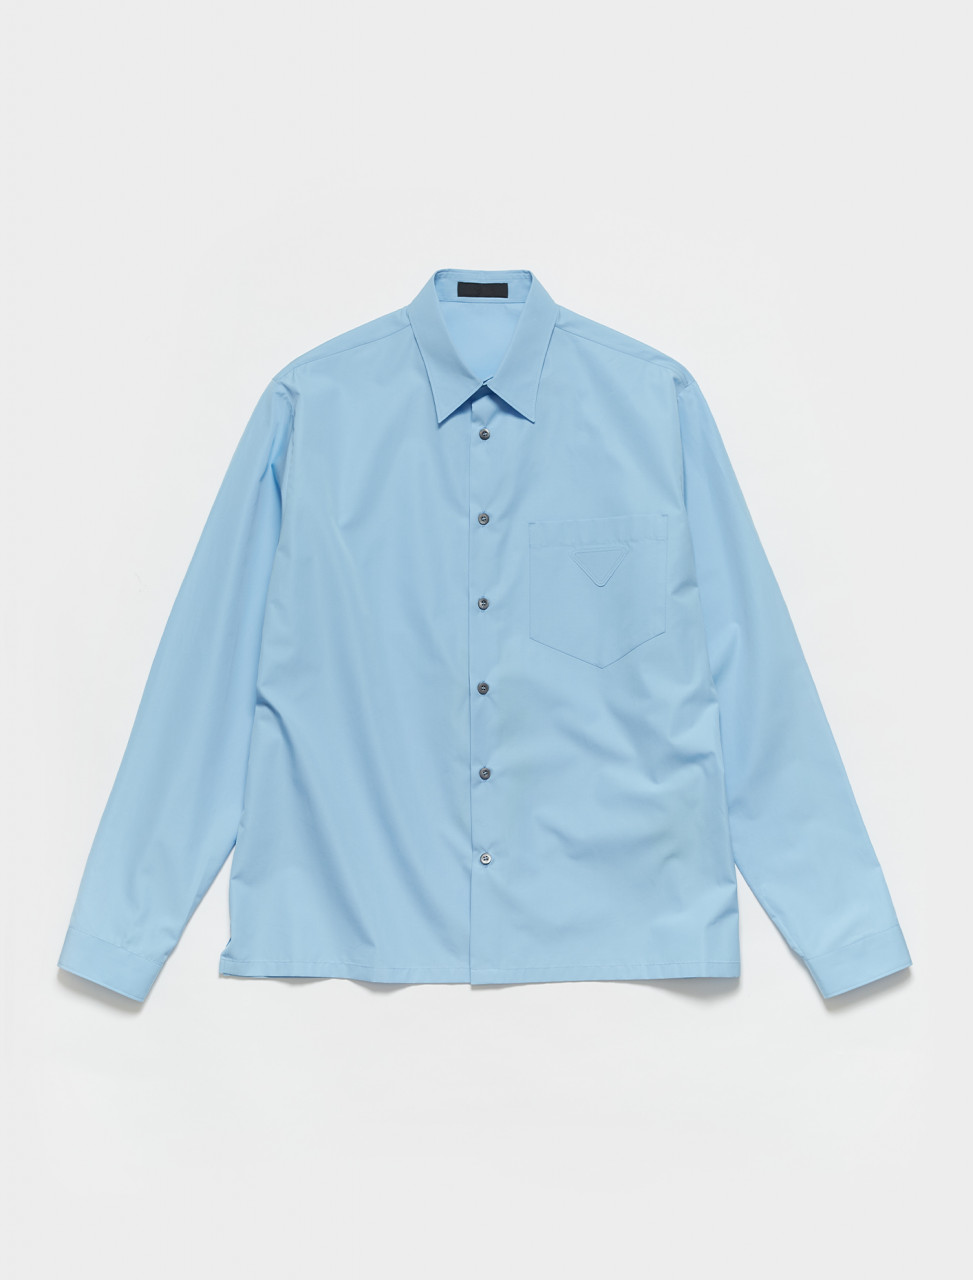 SC533-F0013 PRADA COTTON SHIRT IN AZURE